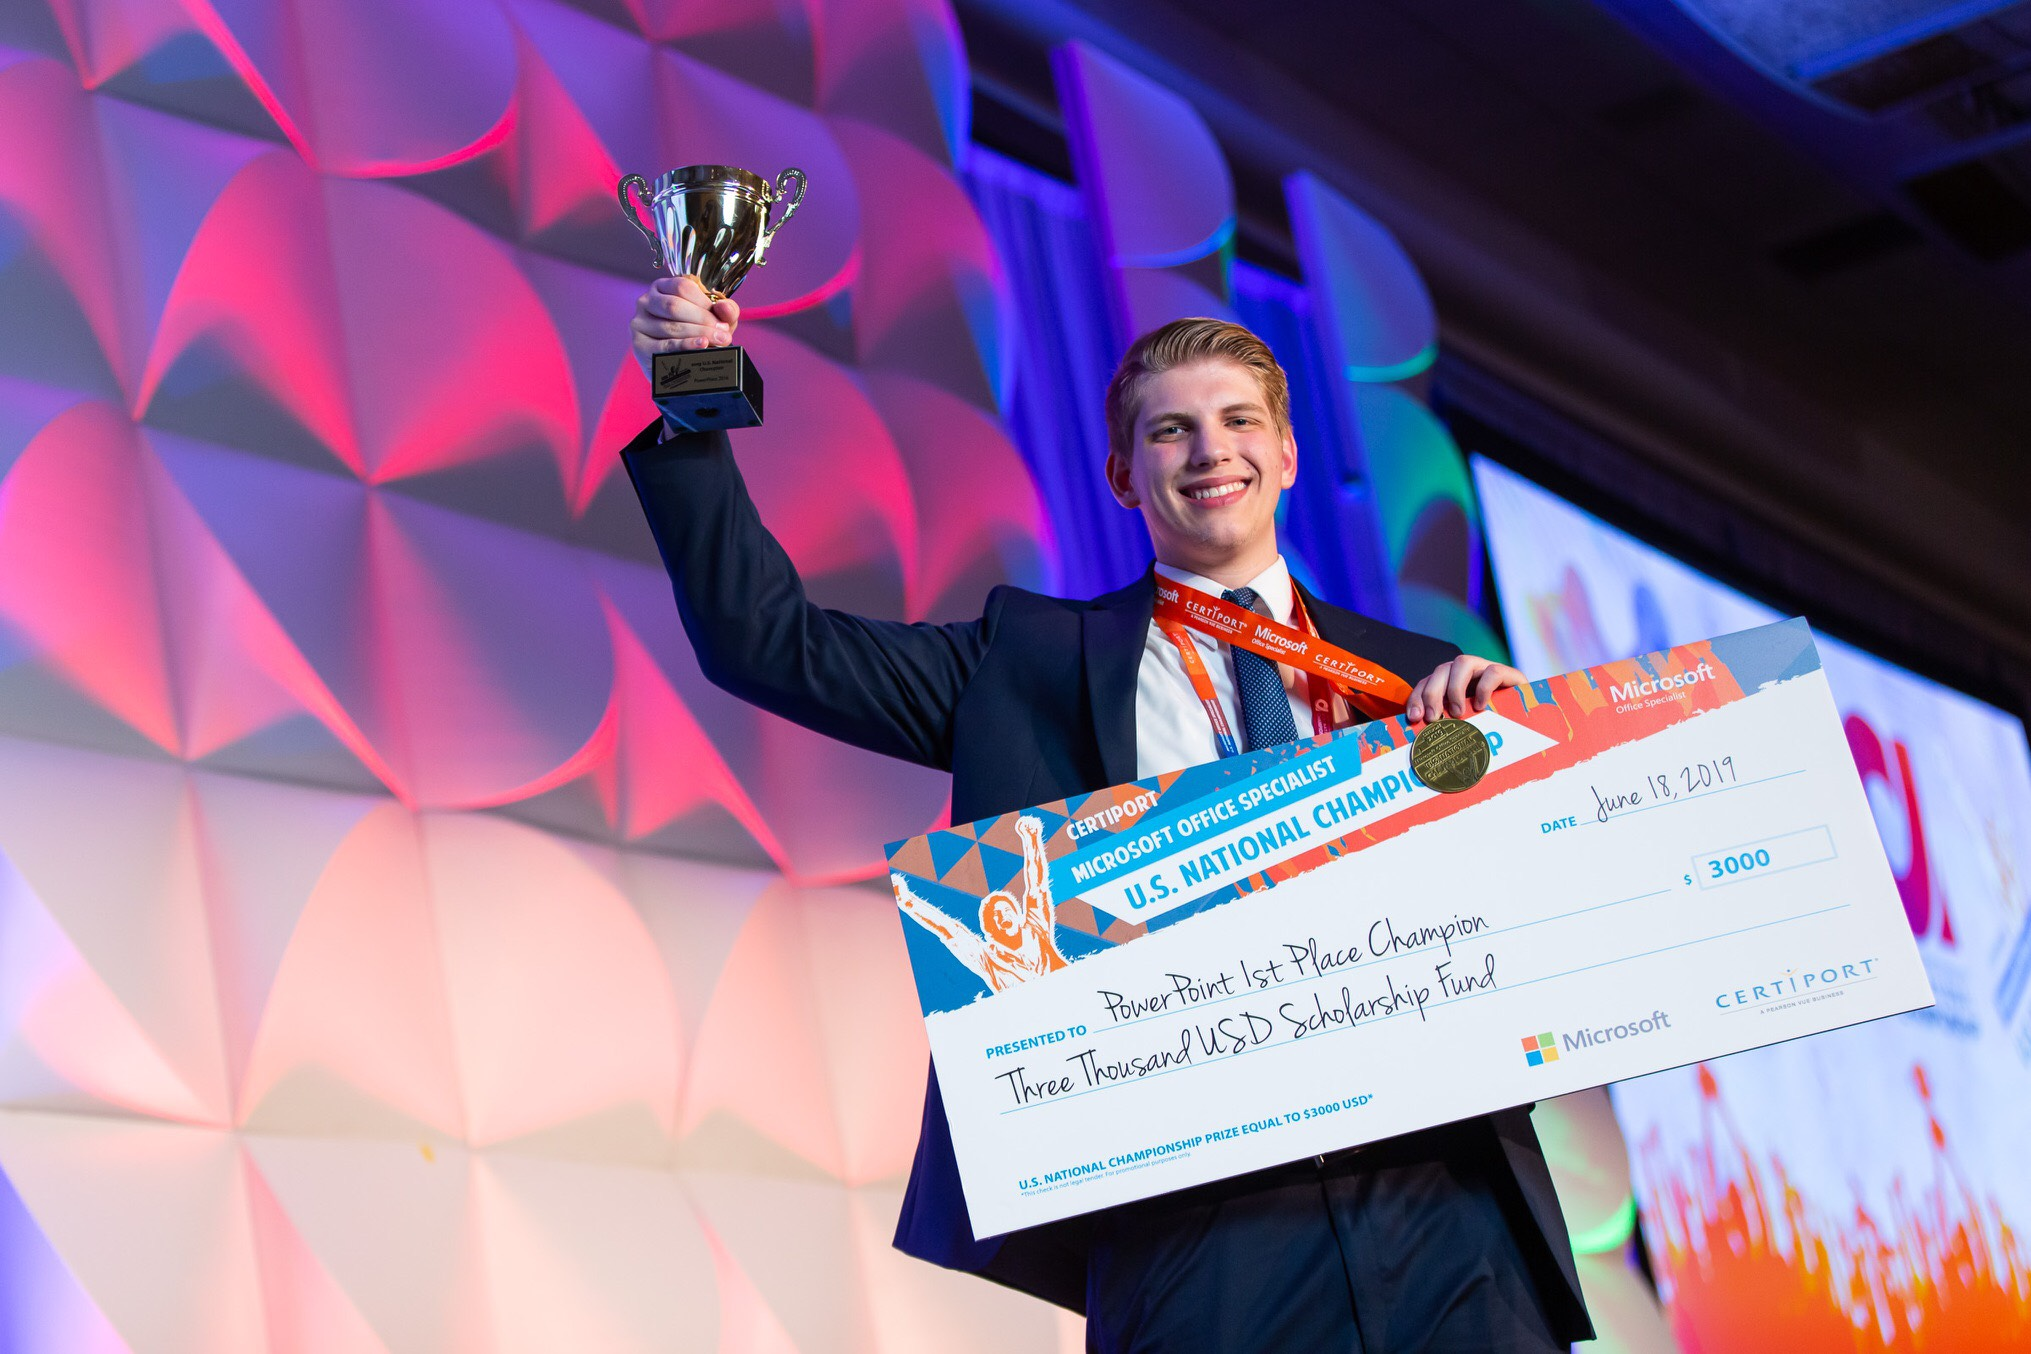 Alabama teen wins PowerPoint world title | Alabama Public Radio